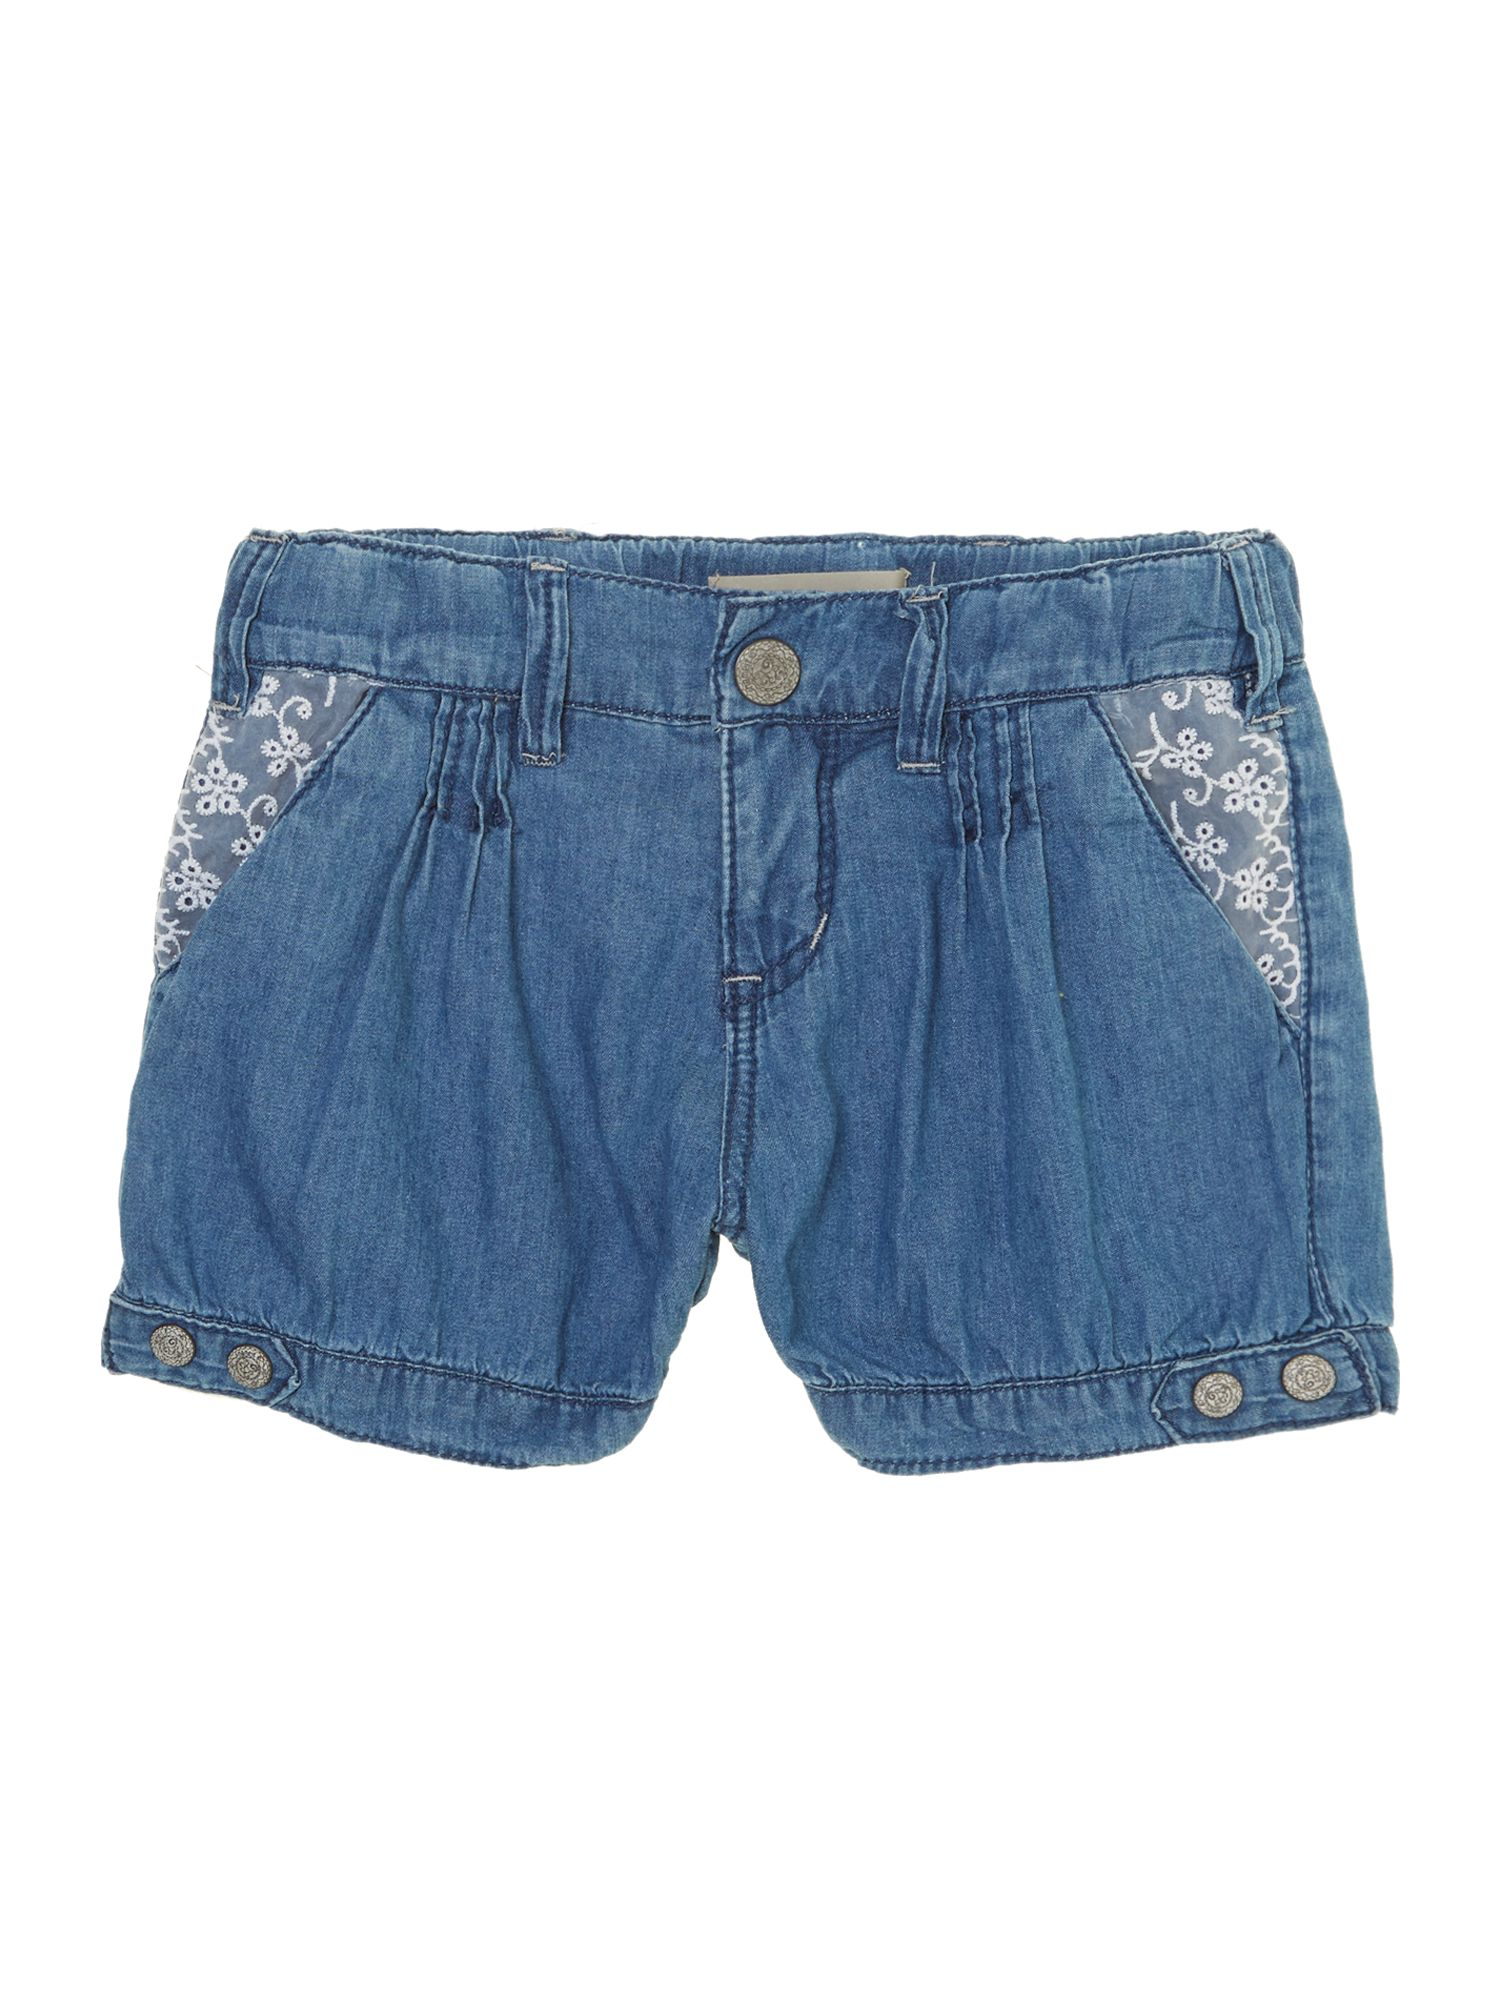 Girls lace pocket denim shorts